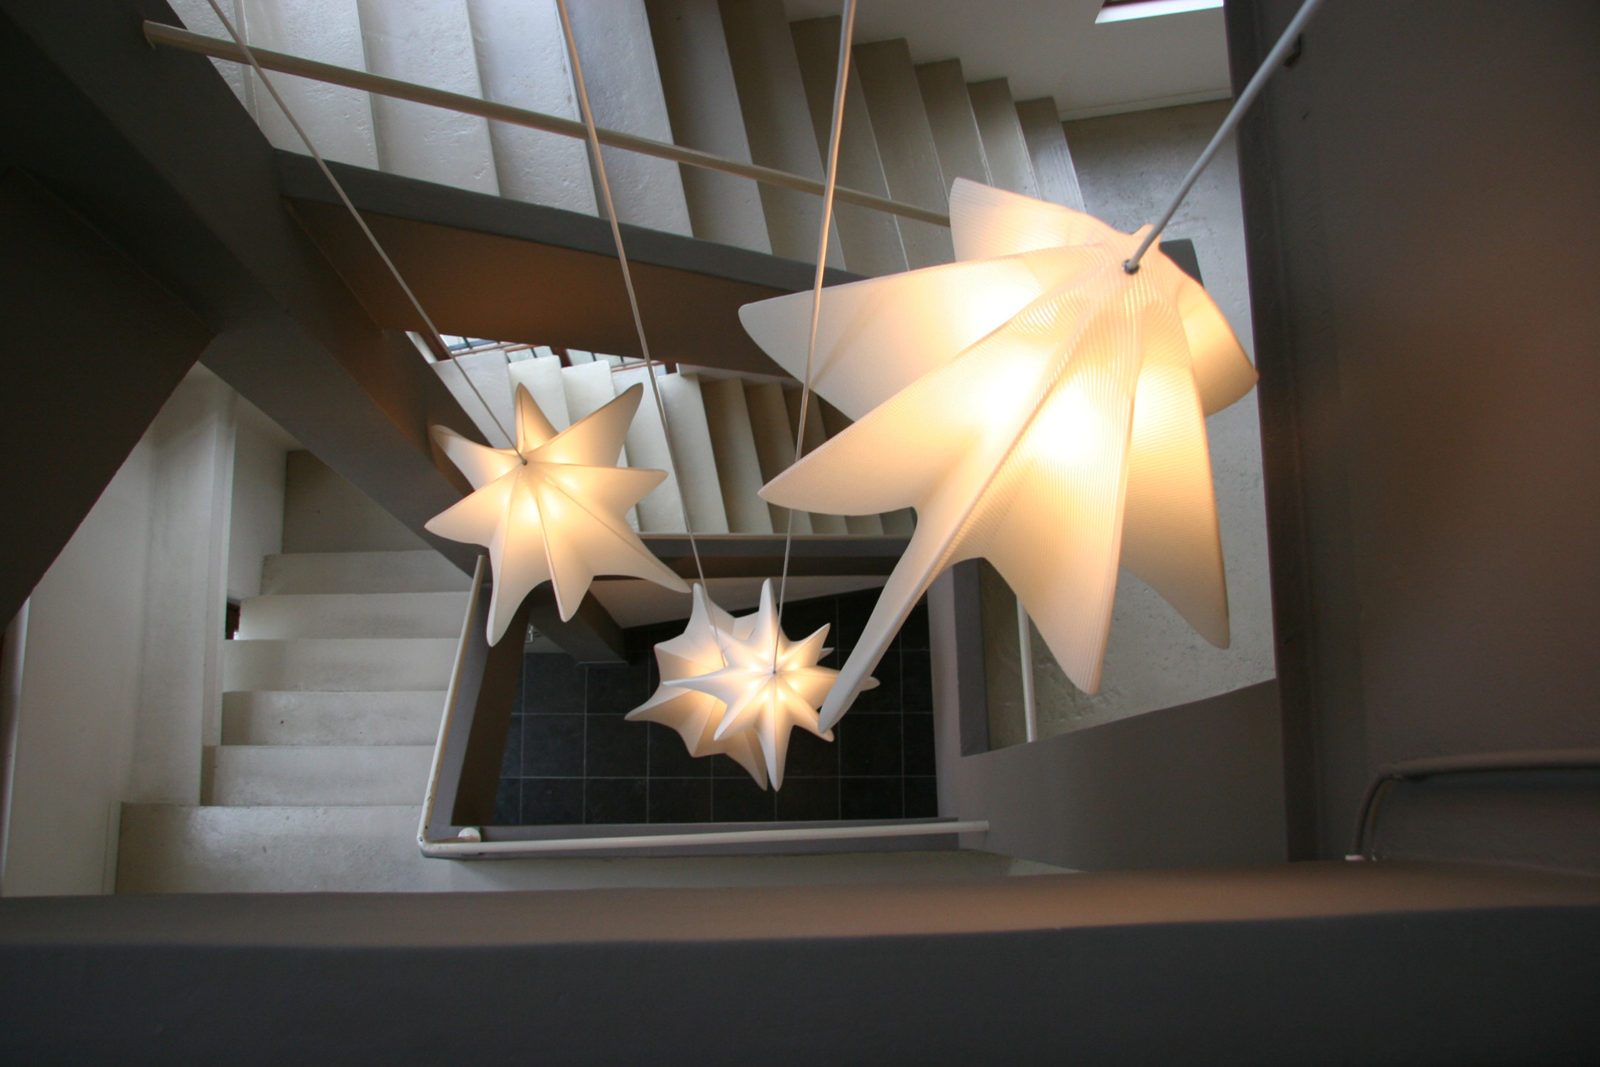 'Flight' pendant lamps for private staircase - 2008